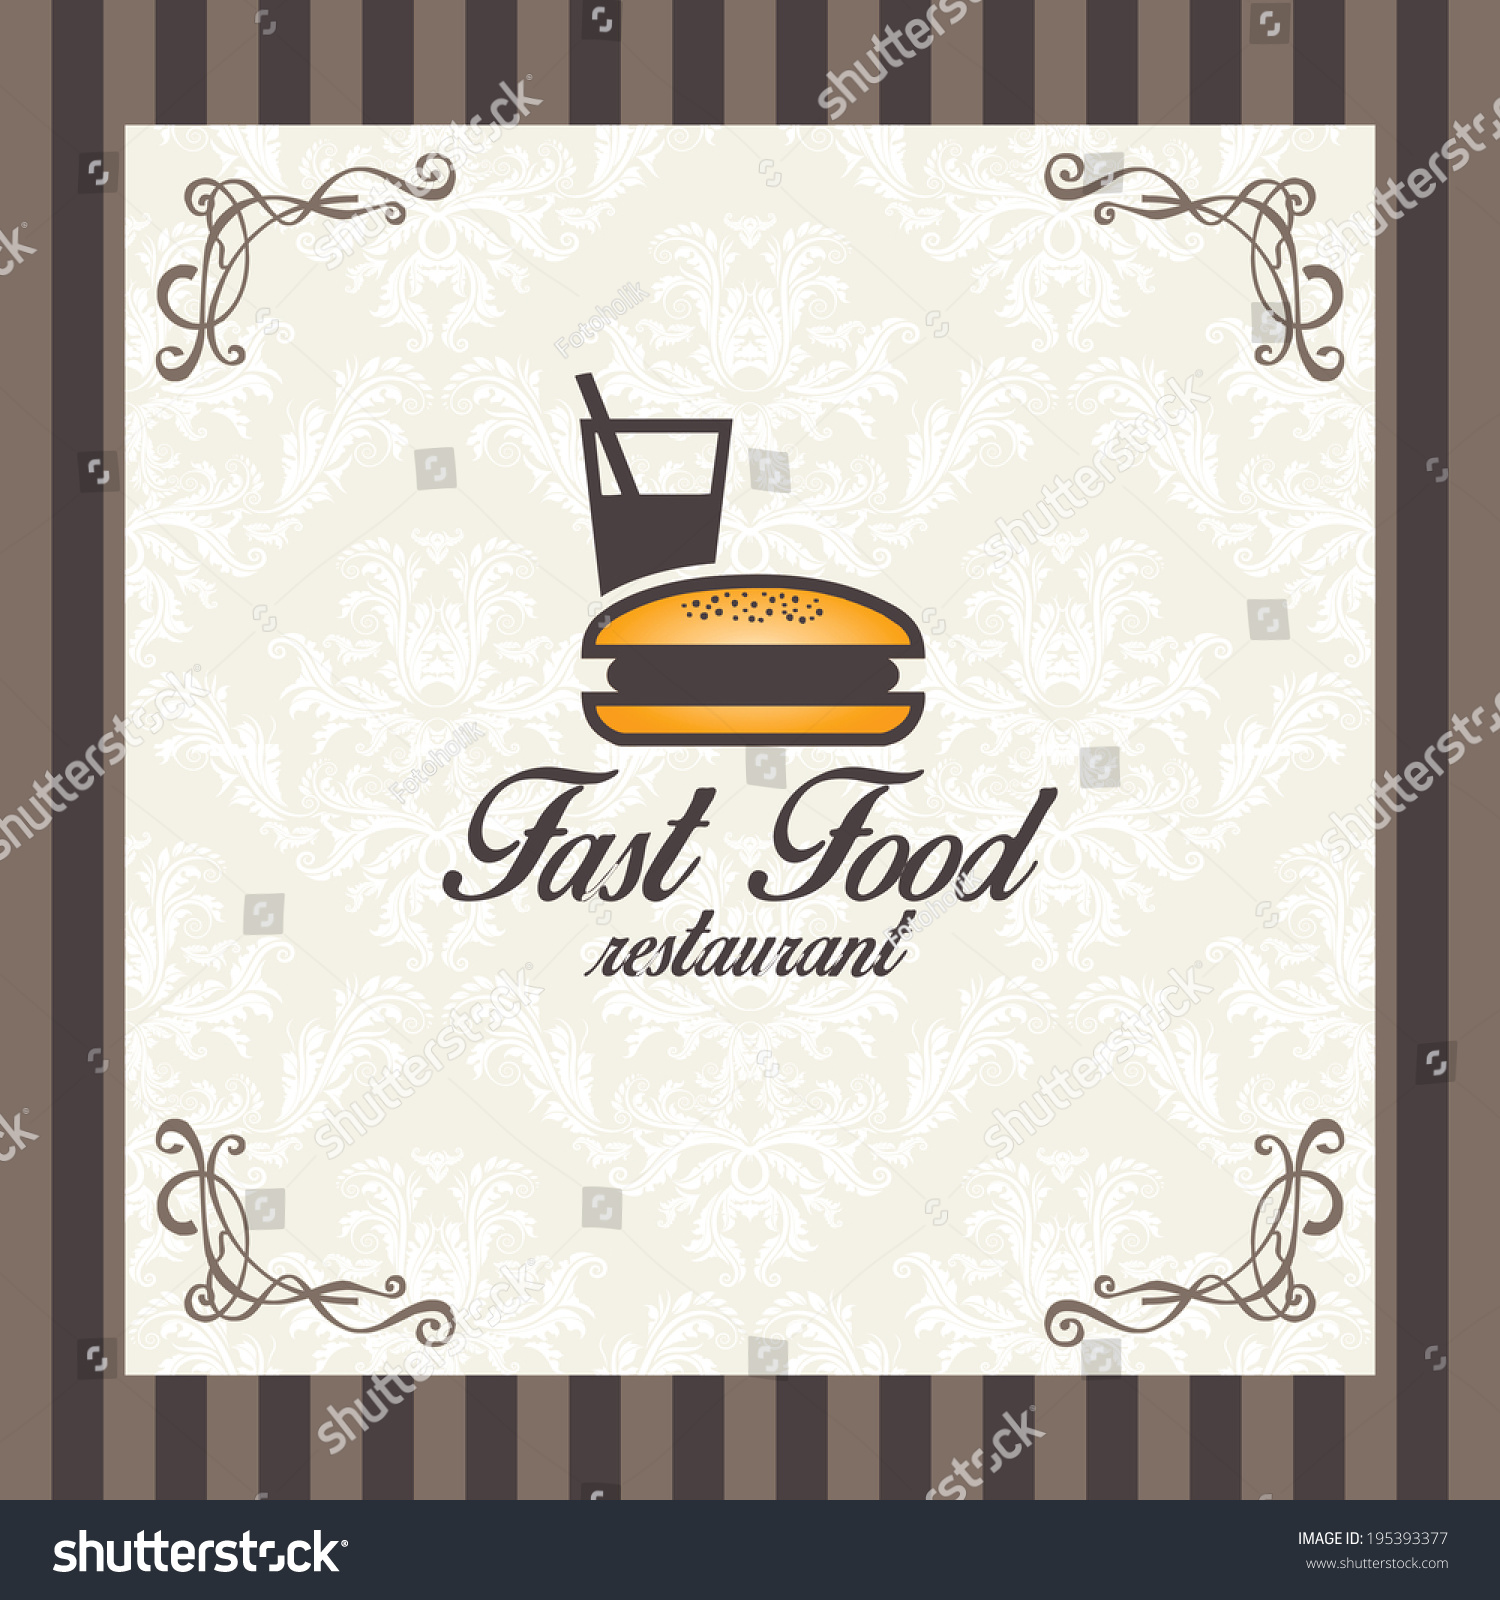 vintage fast food restaurant menu cover stock vector (royalty free